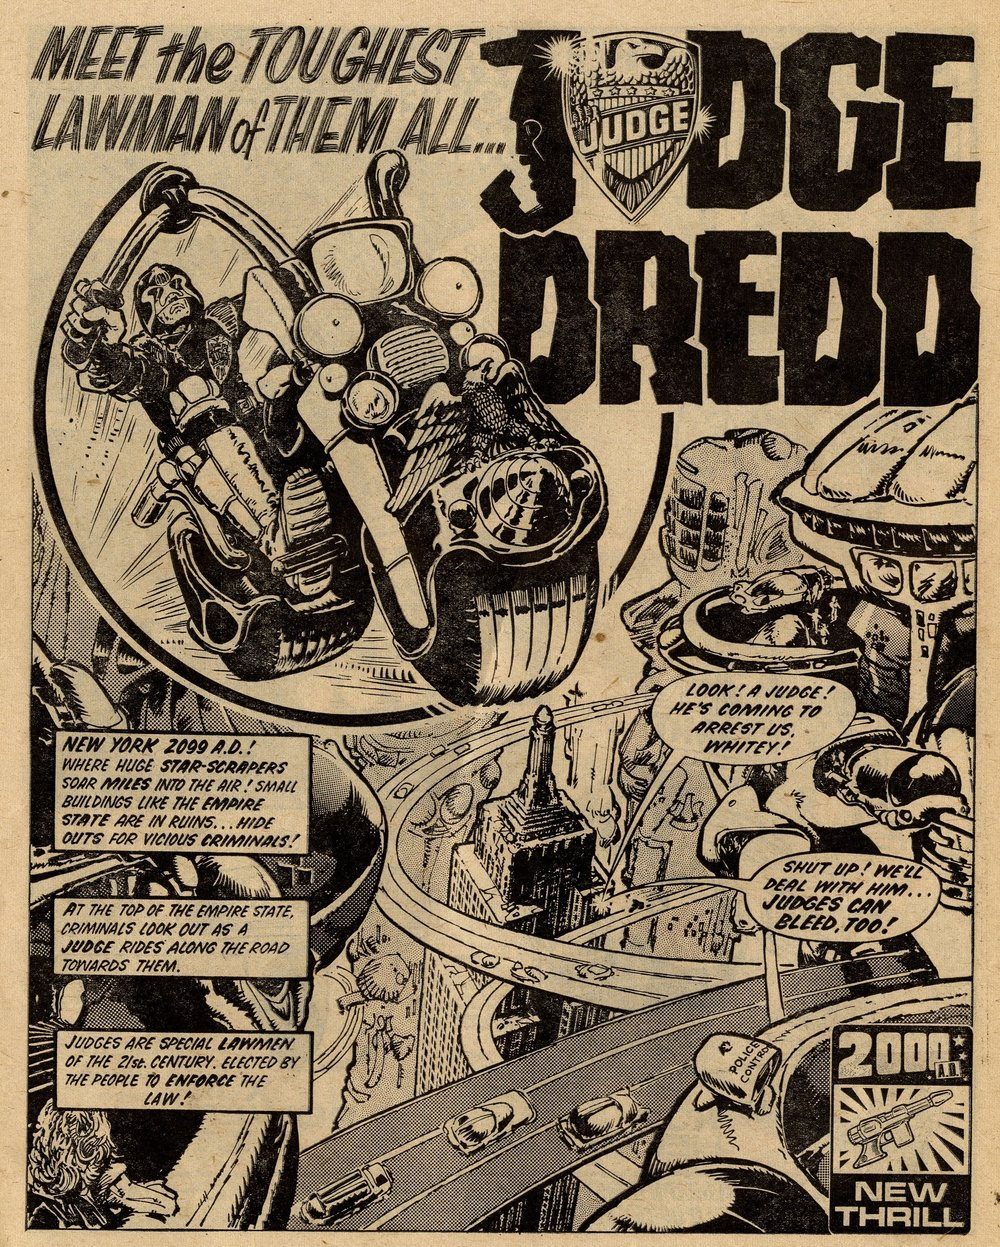 Judge Dredd: Peter Harris (writer), Mike McMahon and Carlos Ezquerra (artists)